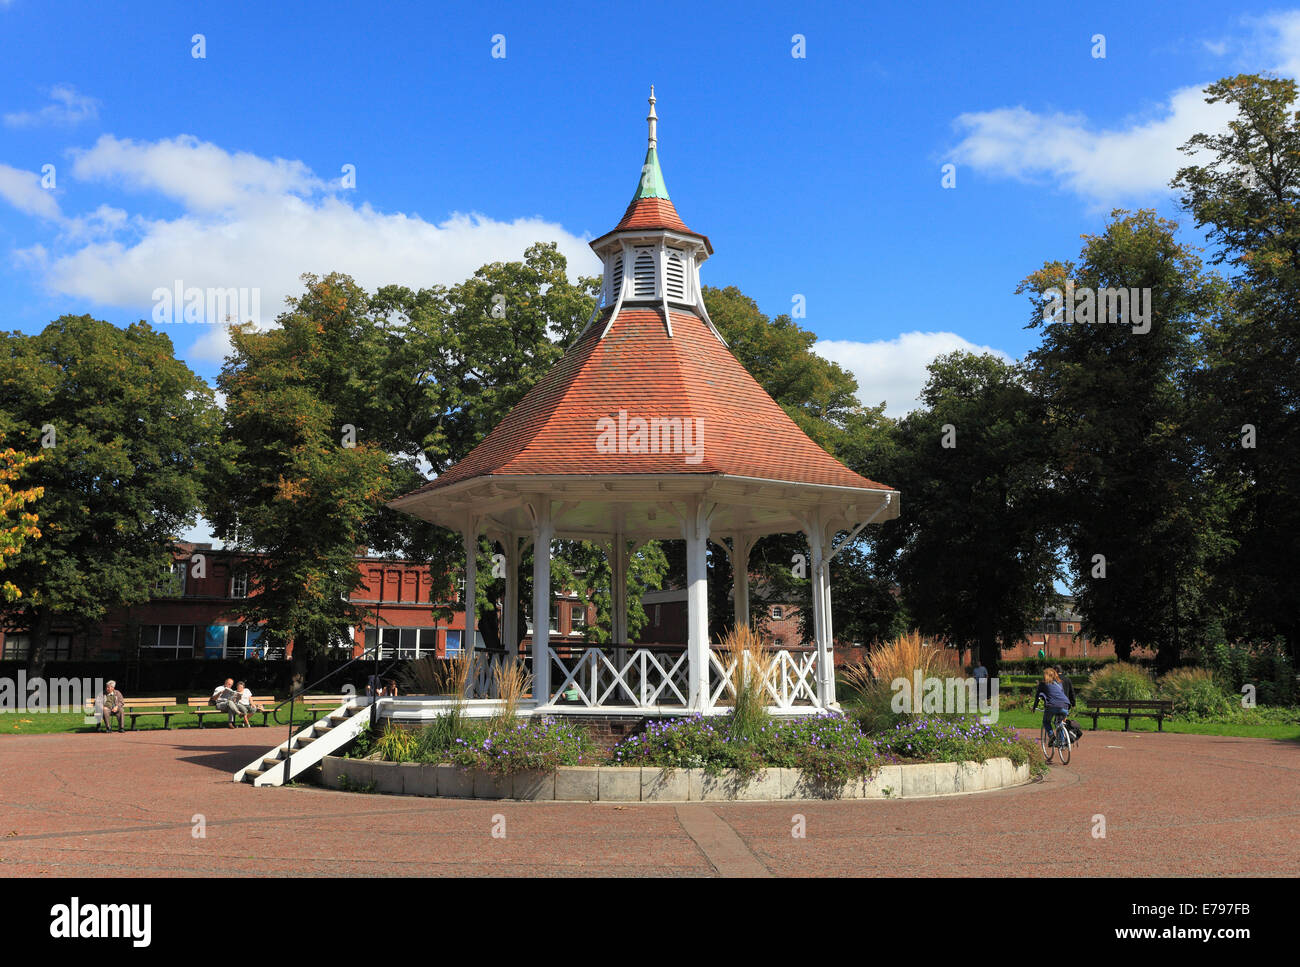 The bandstand in Chapelfield Gardens, Norwich, Norfolk, England. - Stock Image